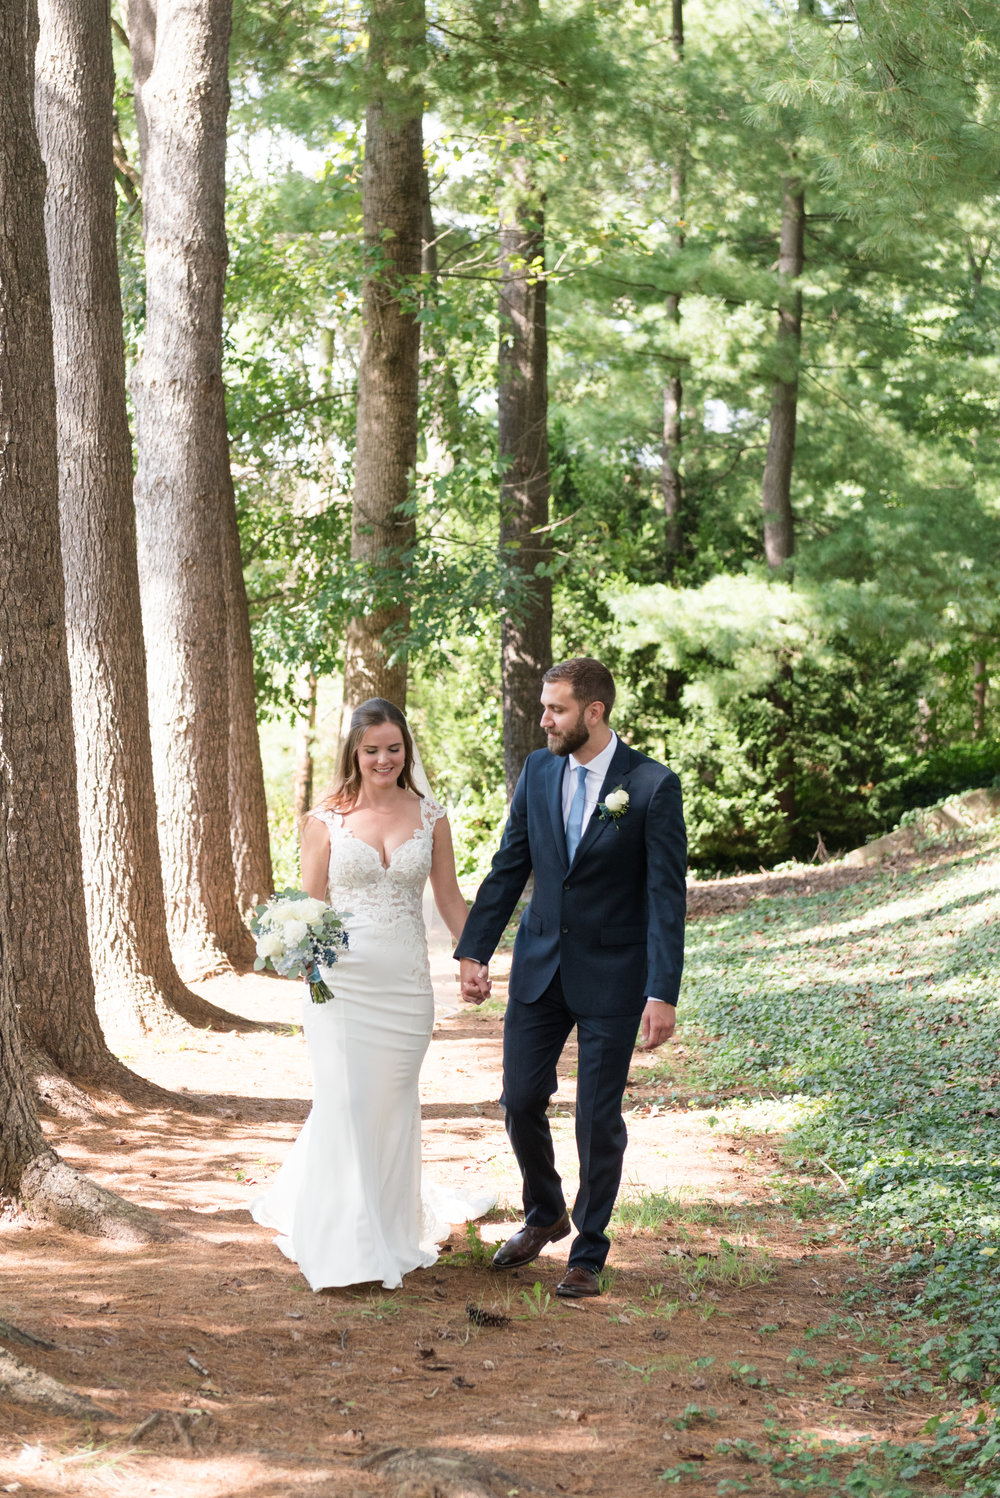 wedding-photographer-asheville-014.jpg